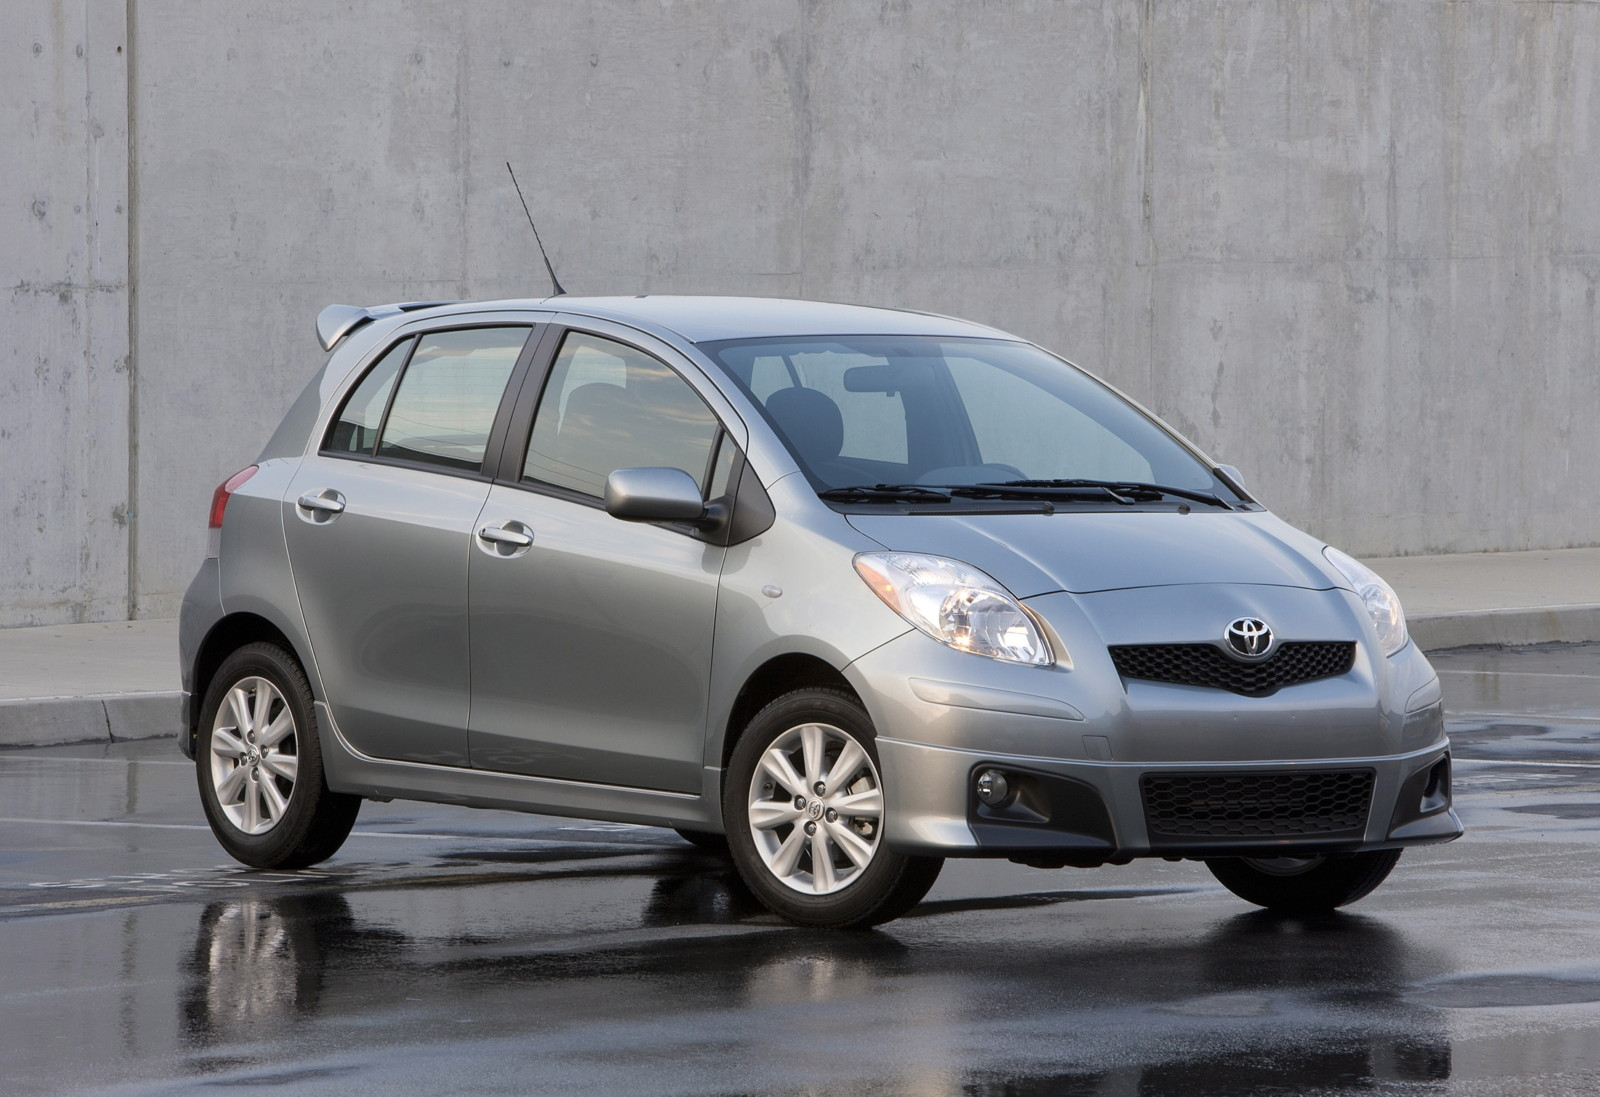 2010 Toyota Yaris Review Ratings Specs Prices And Photos The